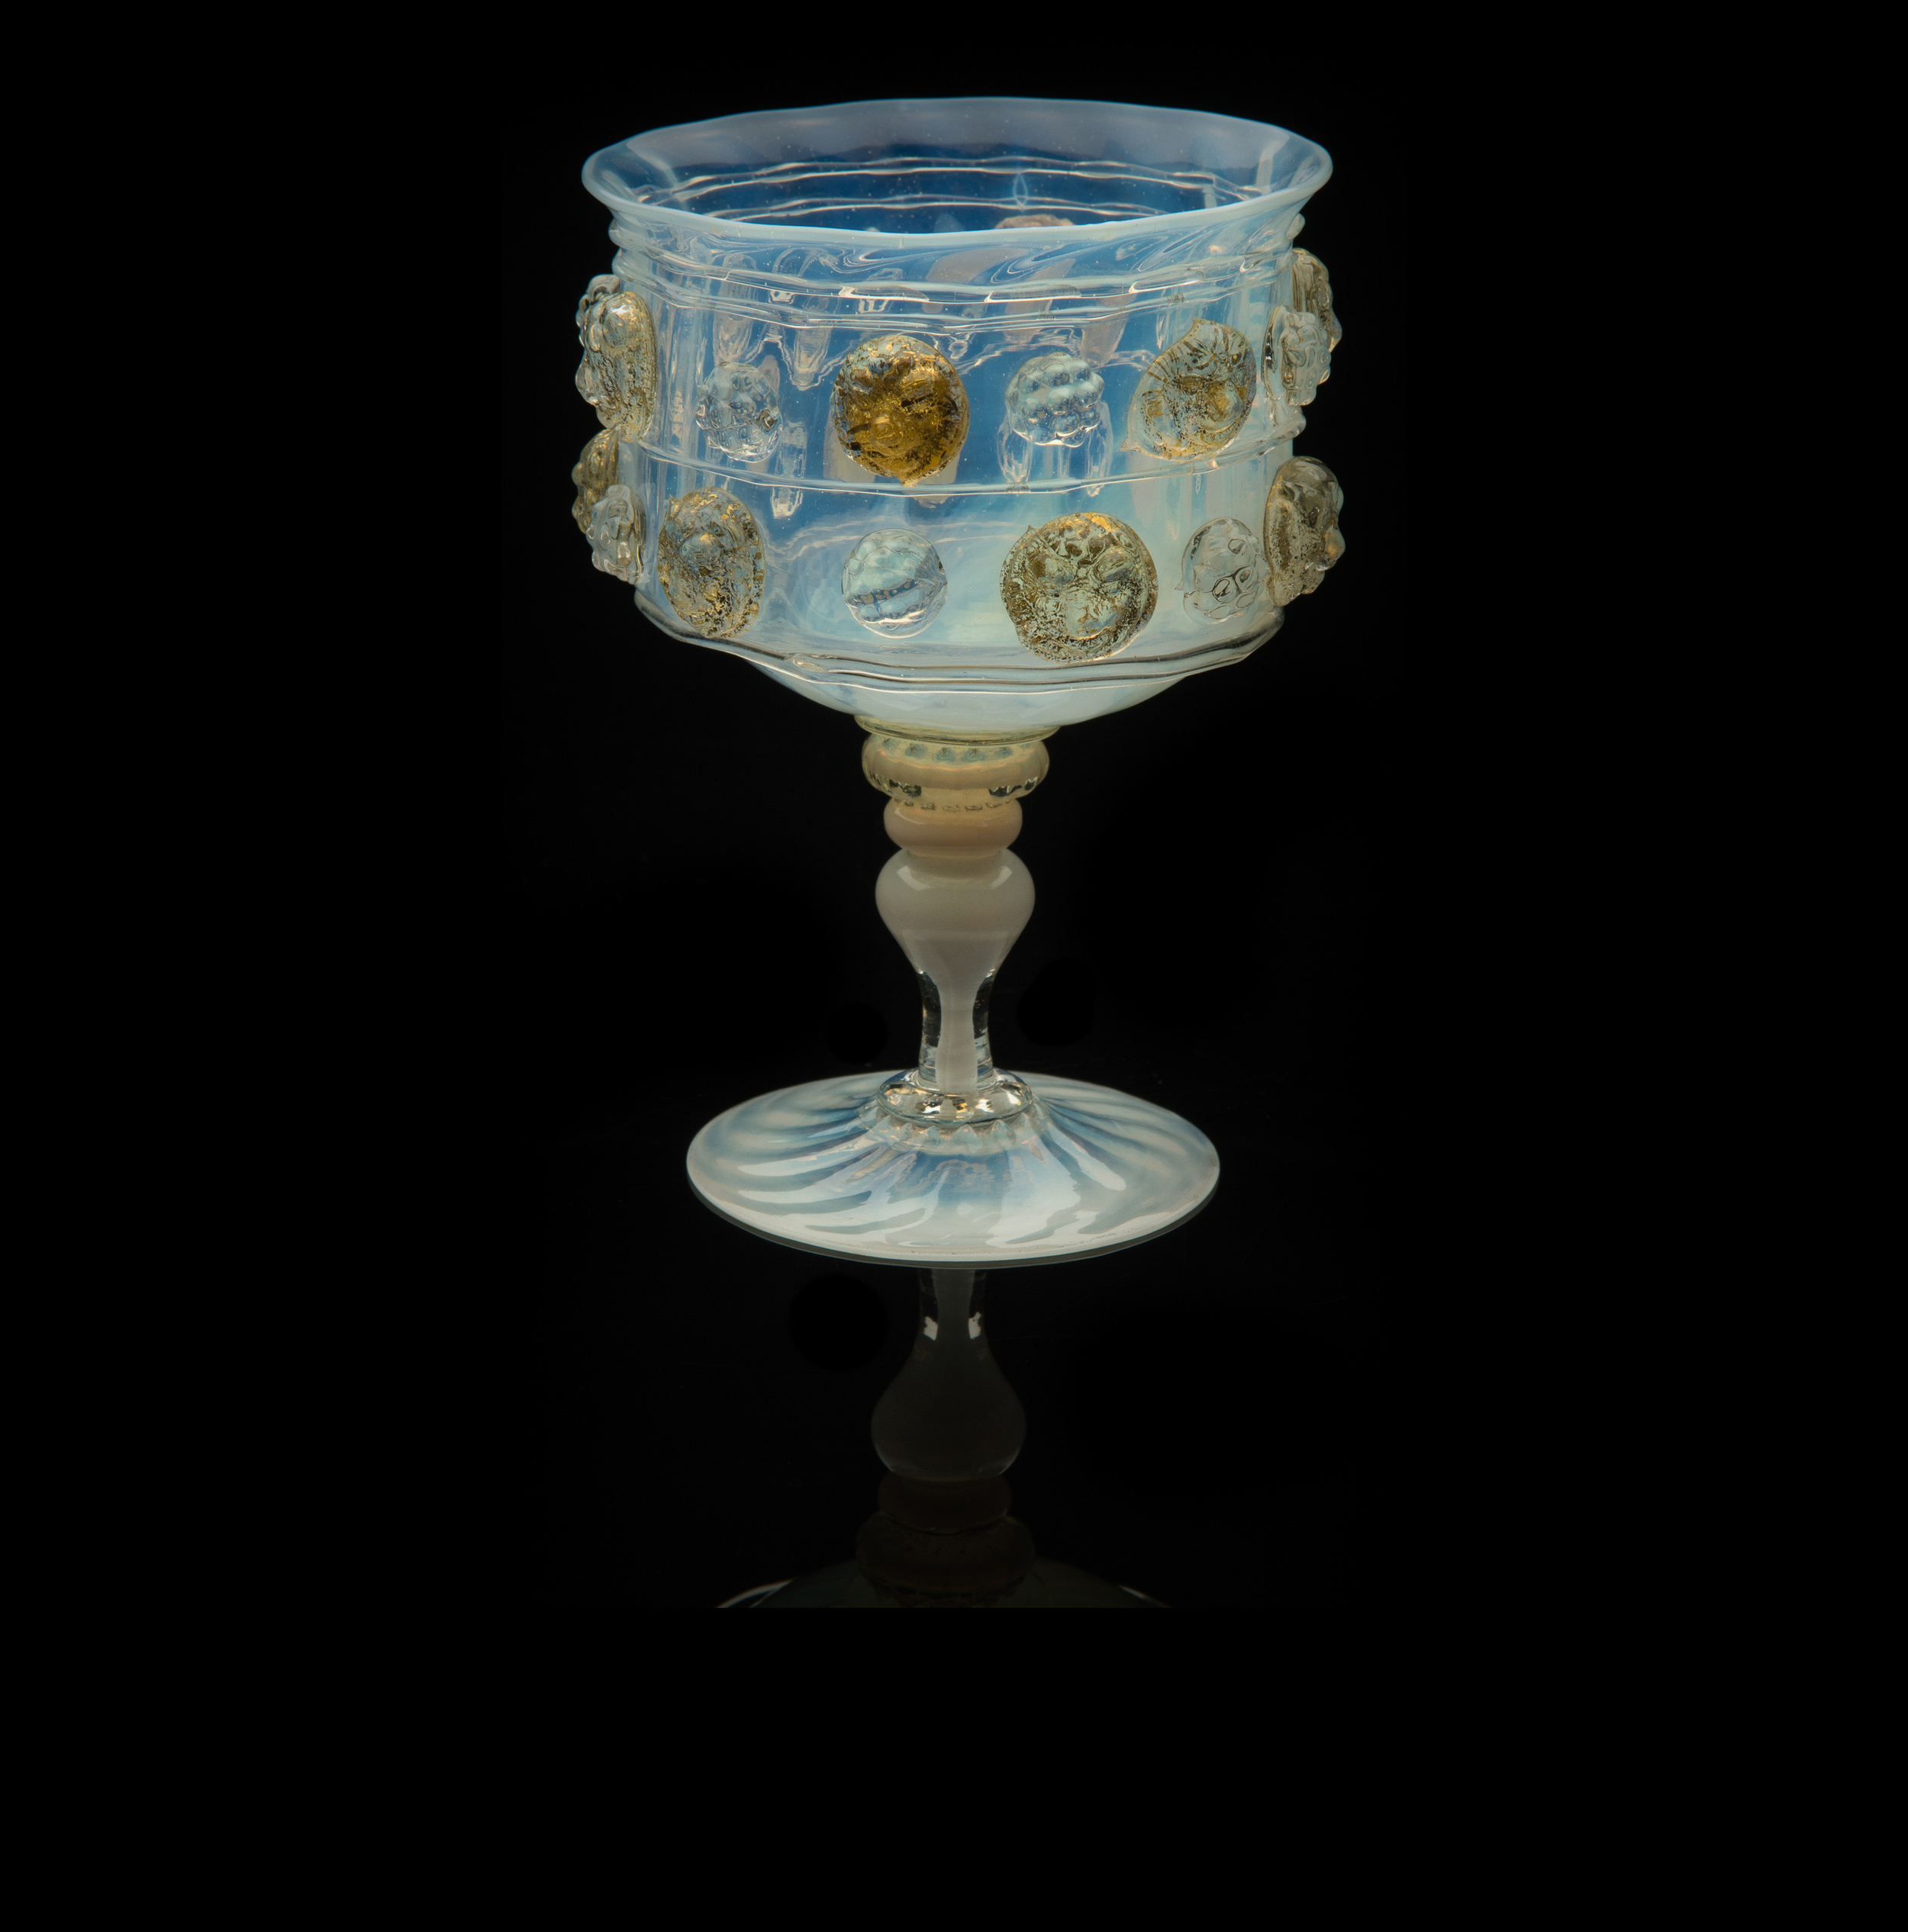 Salviati and Company, Medallion Goblet with Lion Heads0   (1866-1872, glass, 4 5/16 inches), VV.537